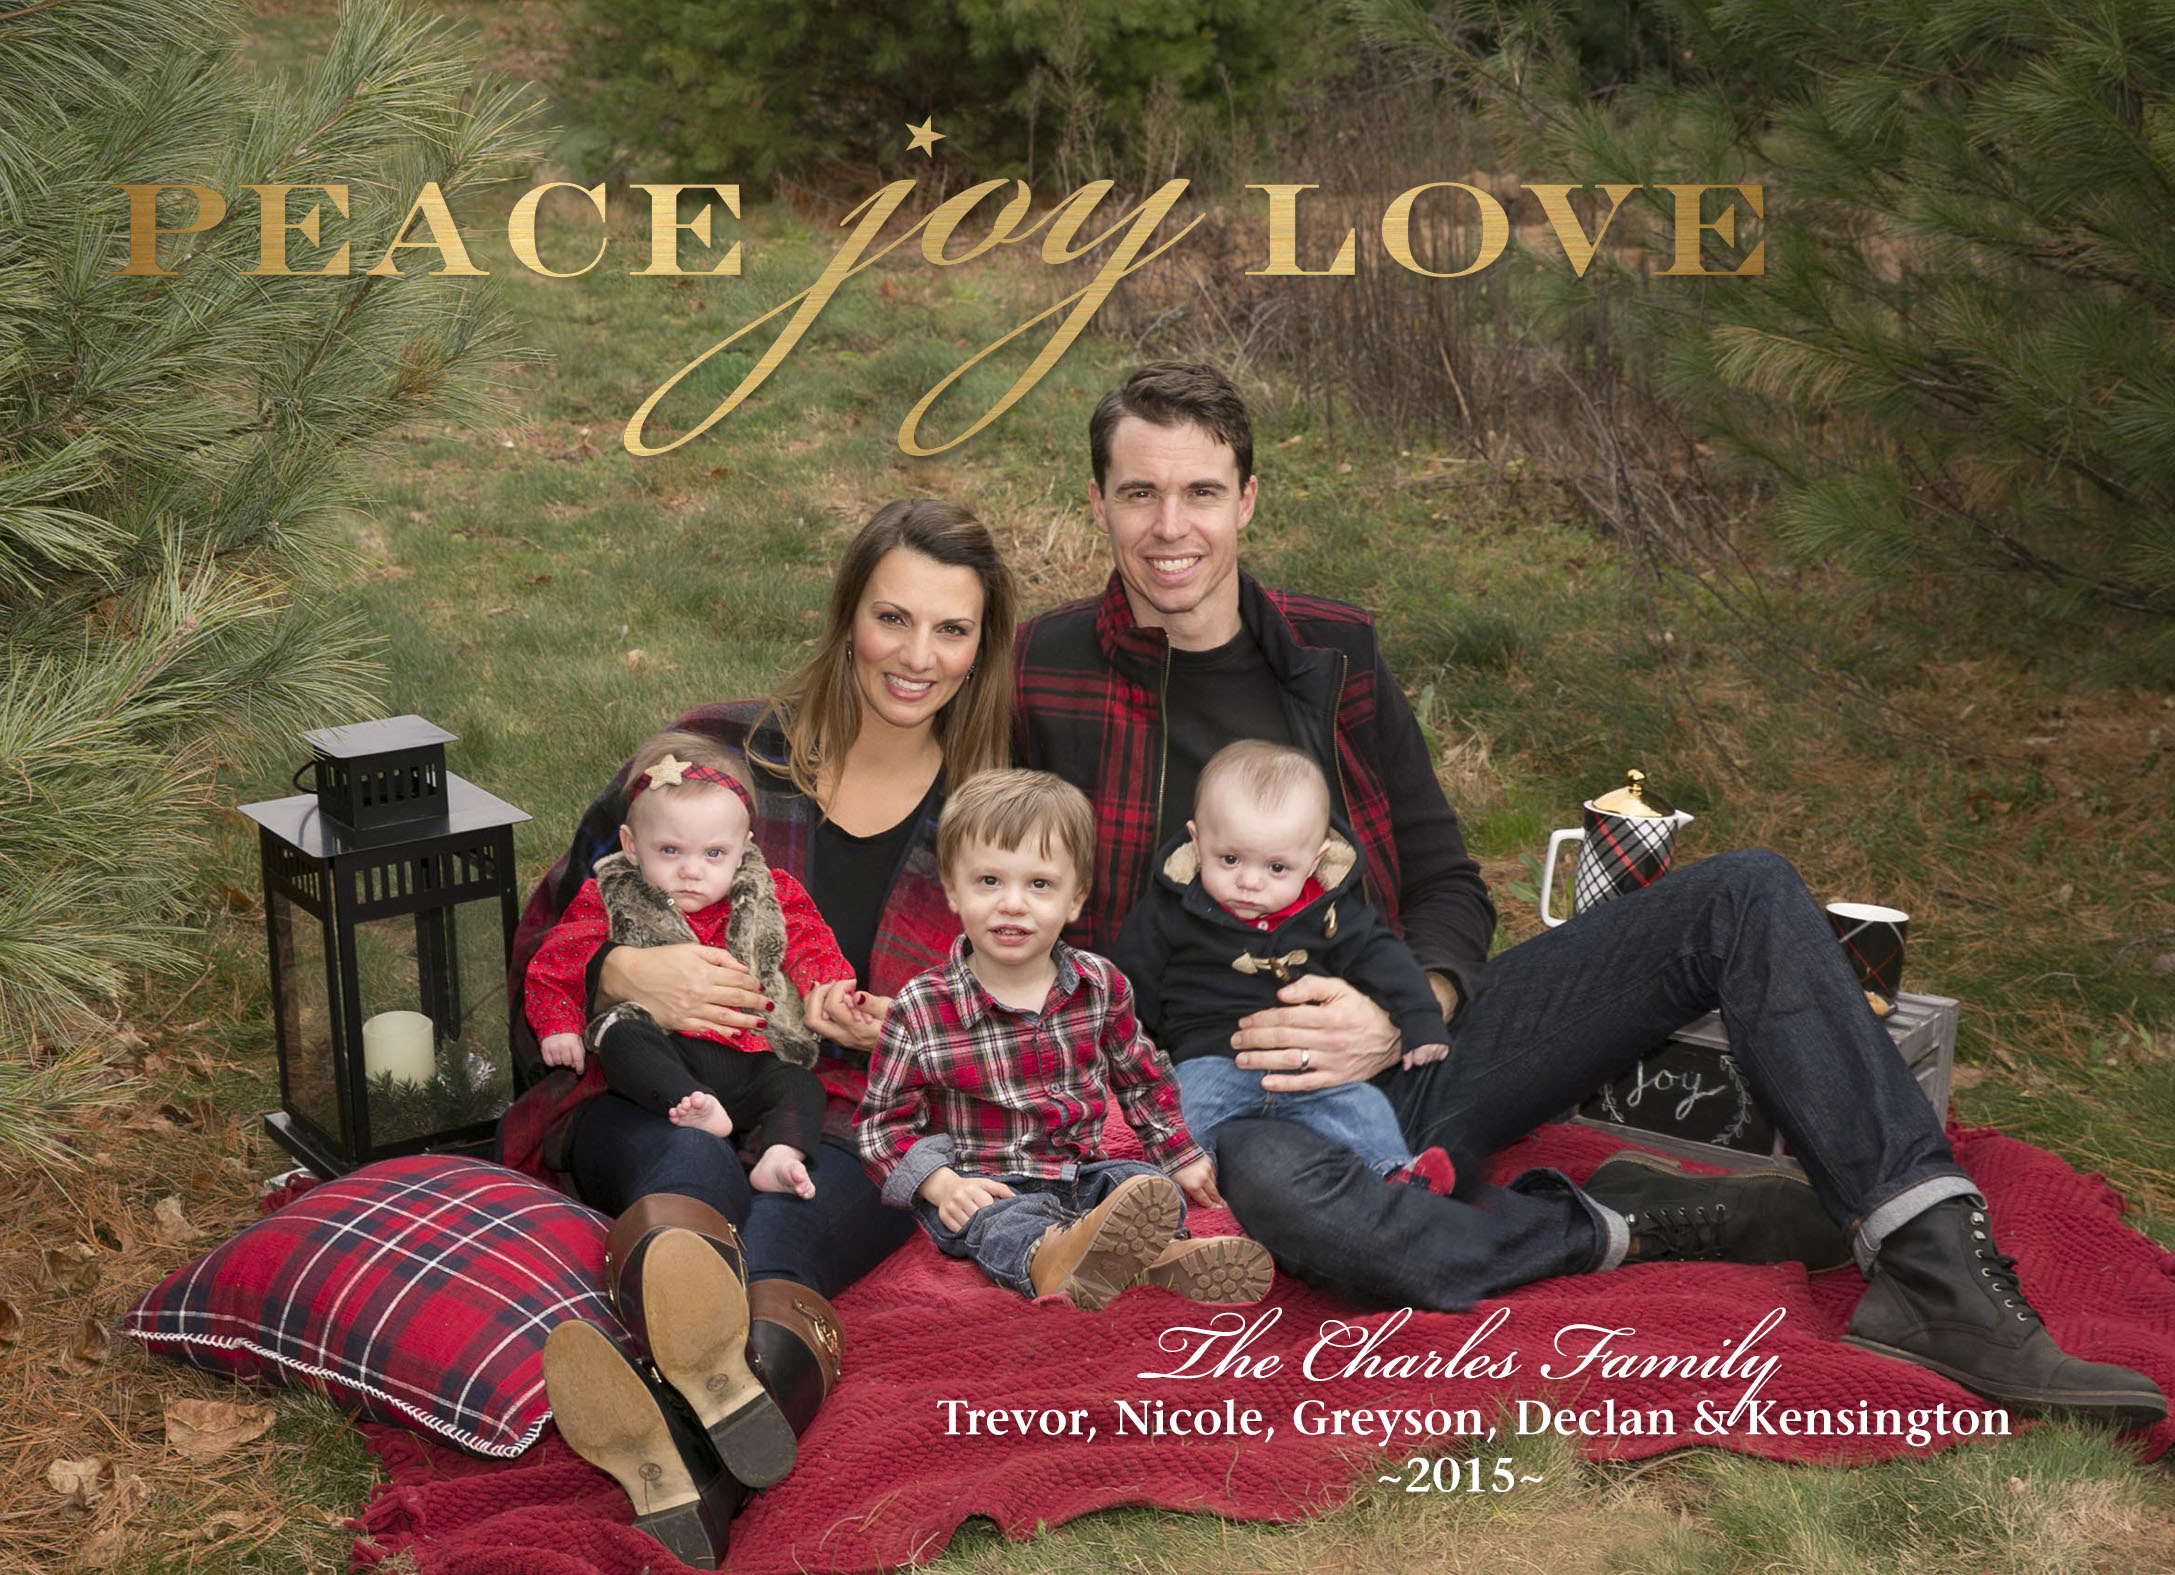 Tips Ideas And Inspiration For Planning A Family Holiday Card The Green Robe